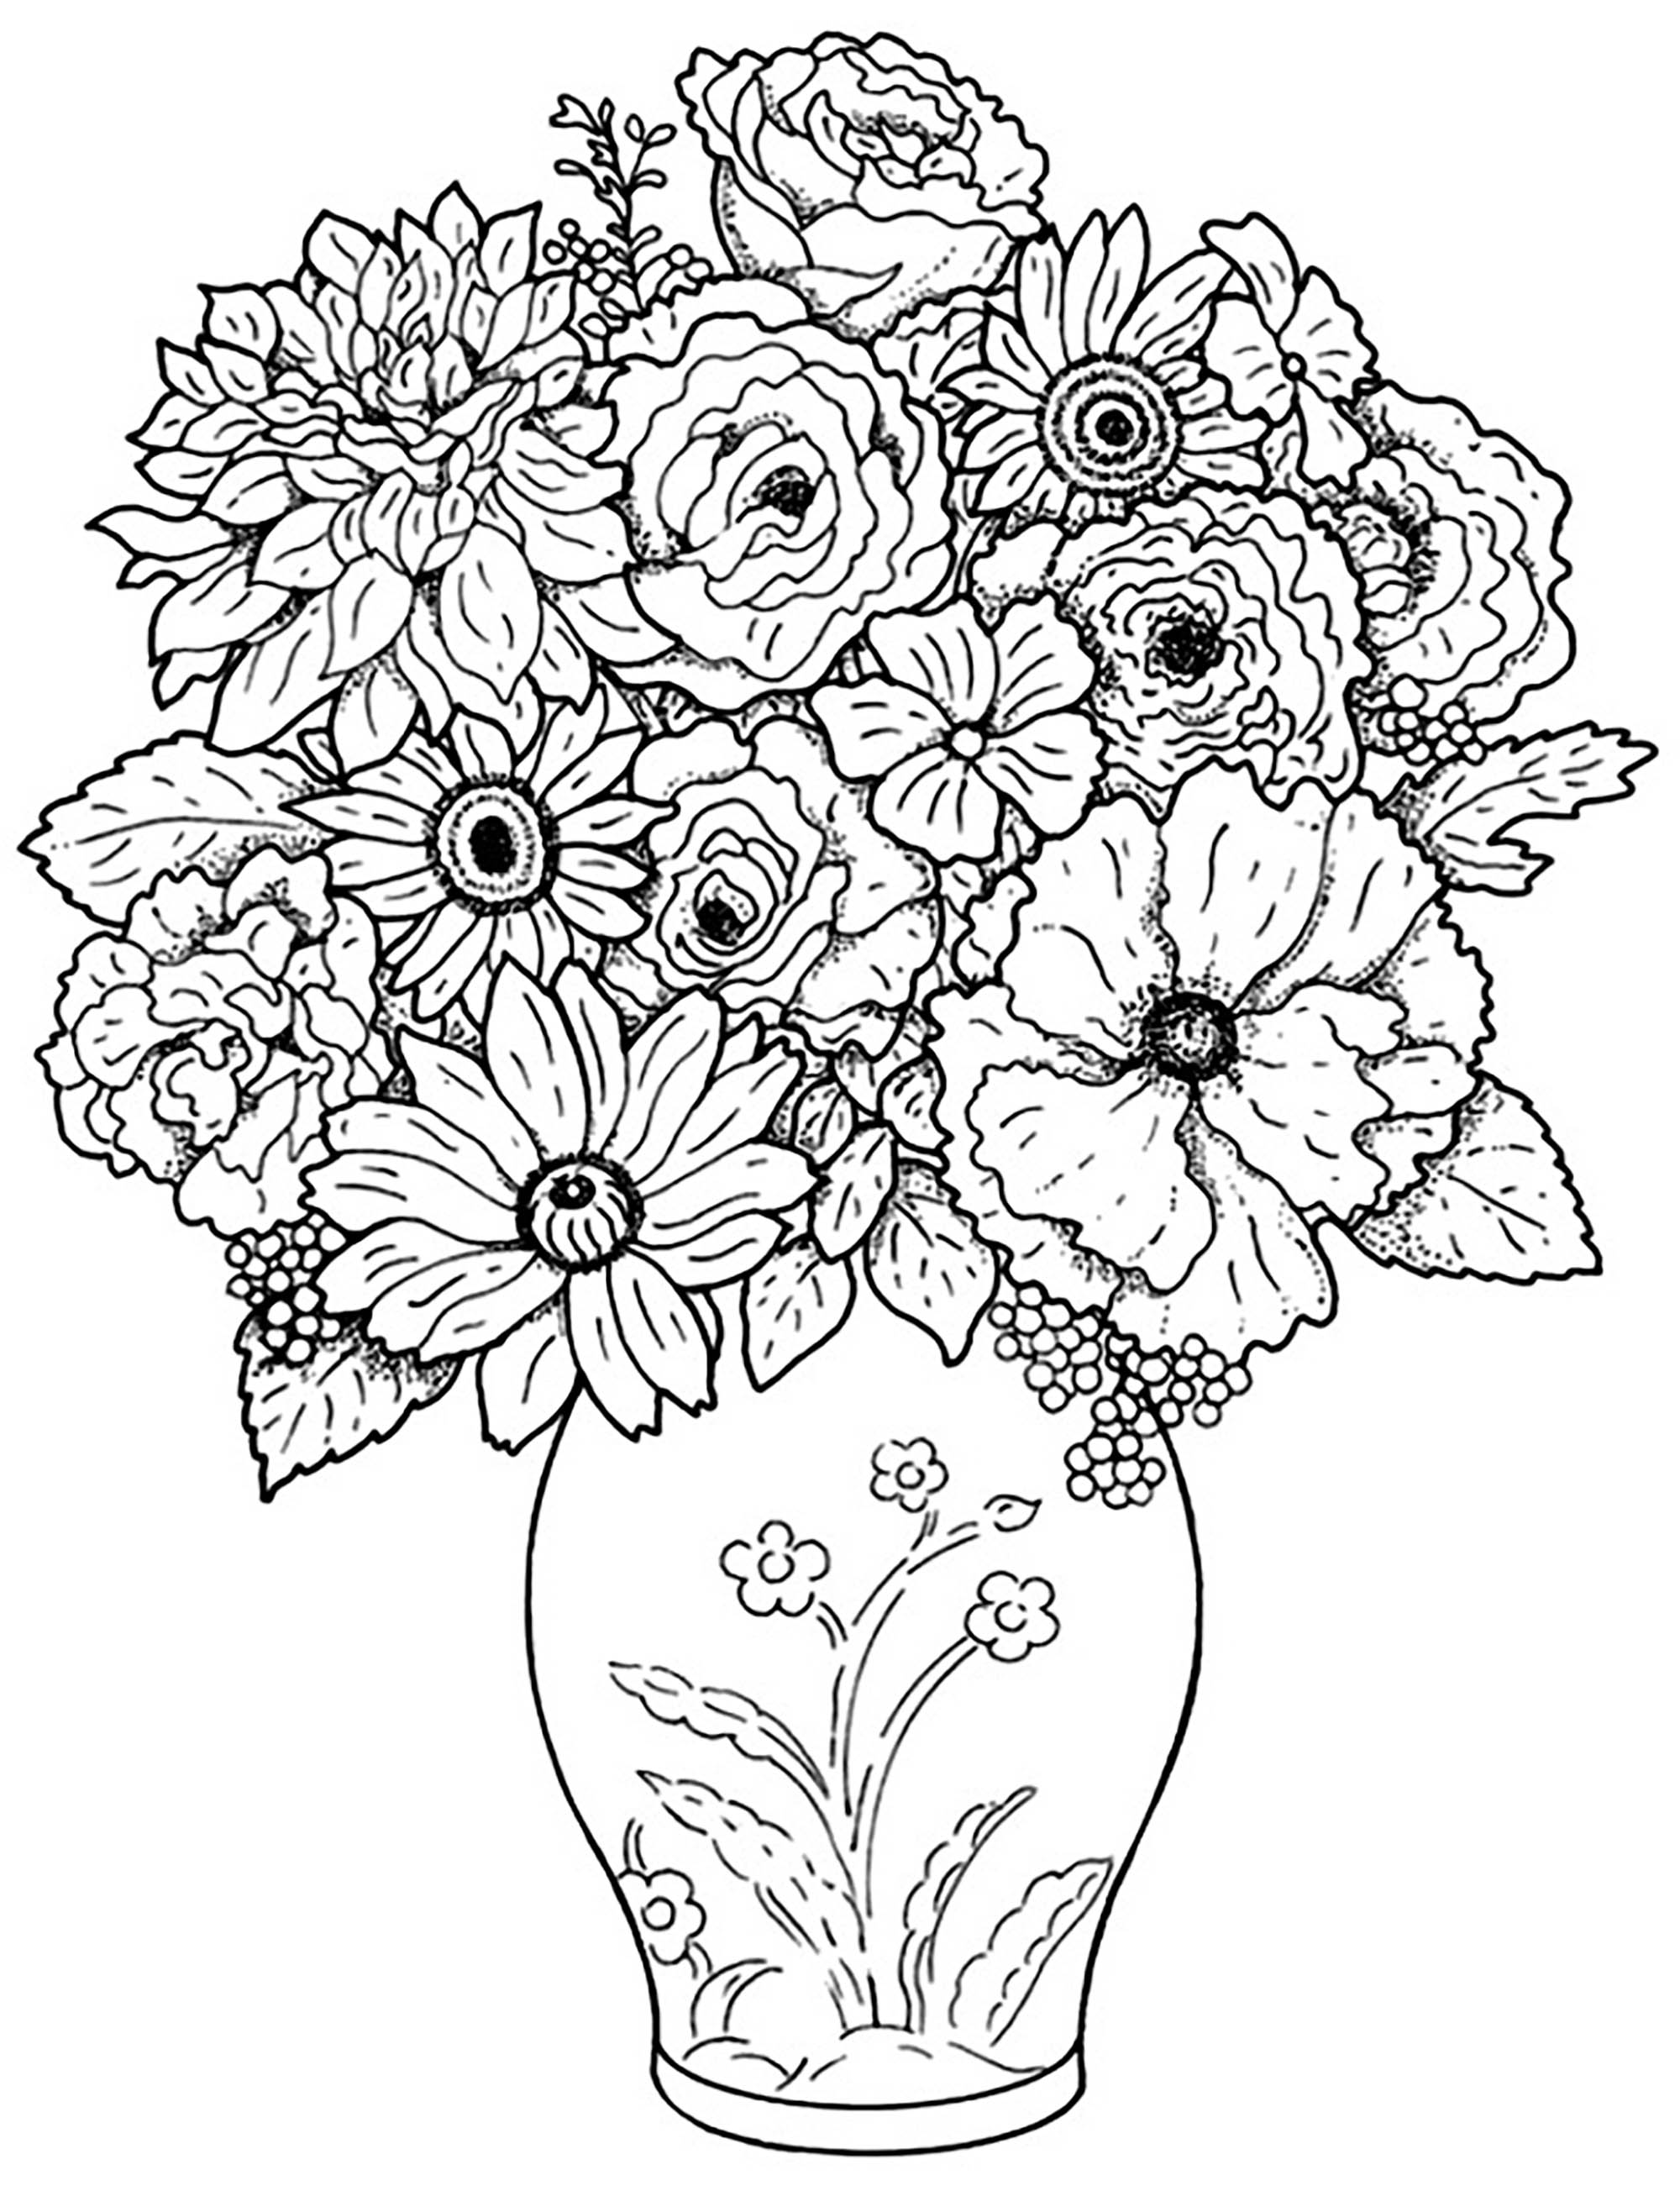 Flowers to color for kids - Flowers Kids Coloring Pages